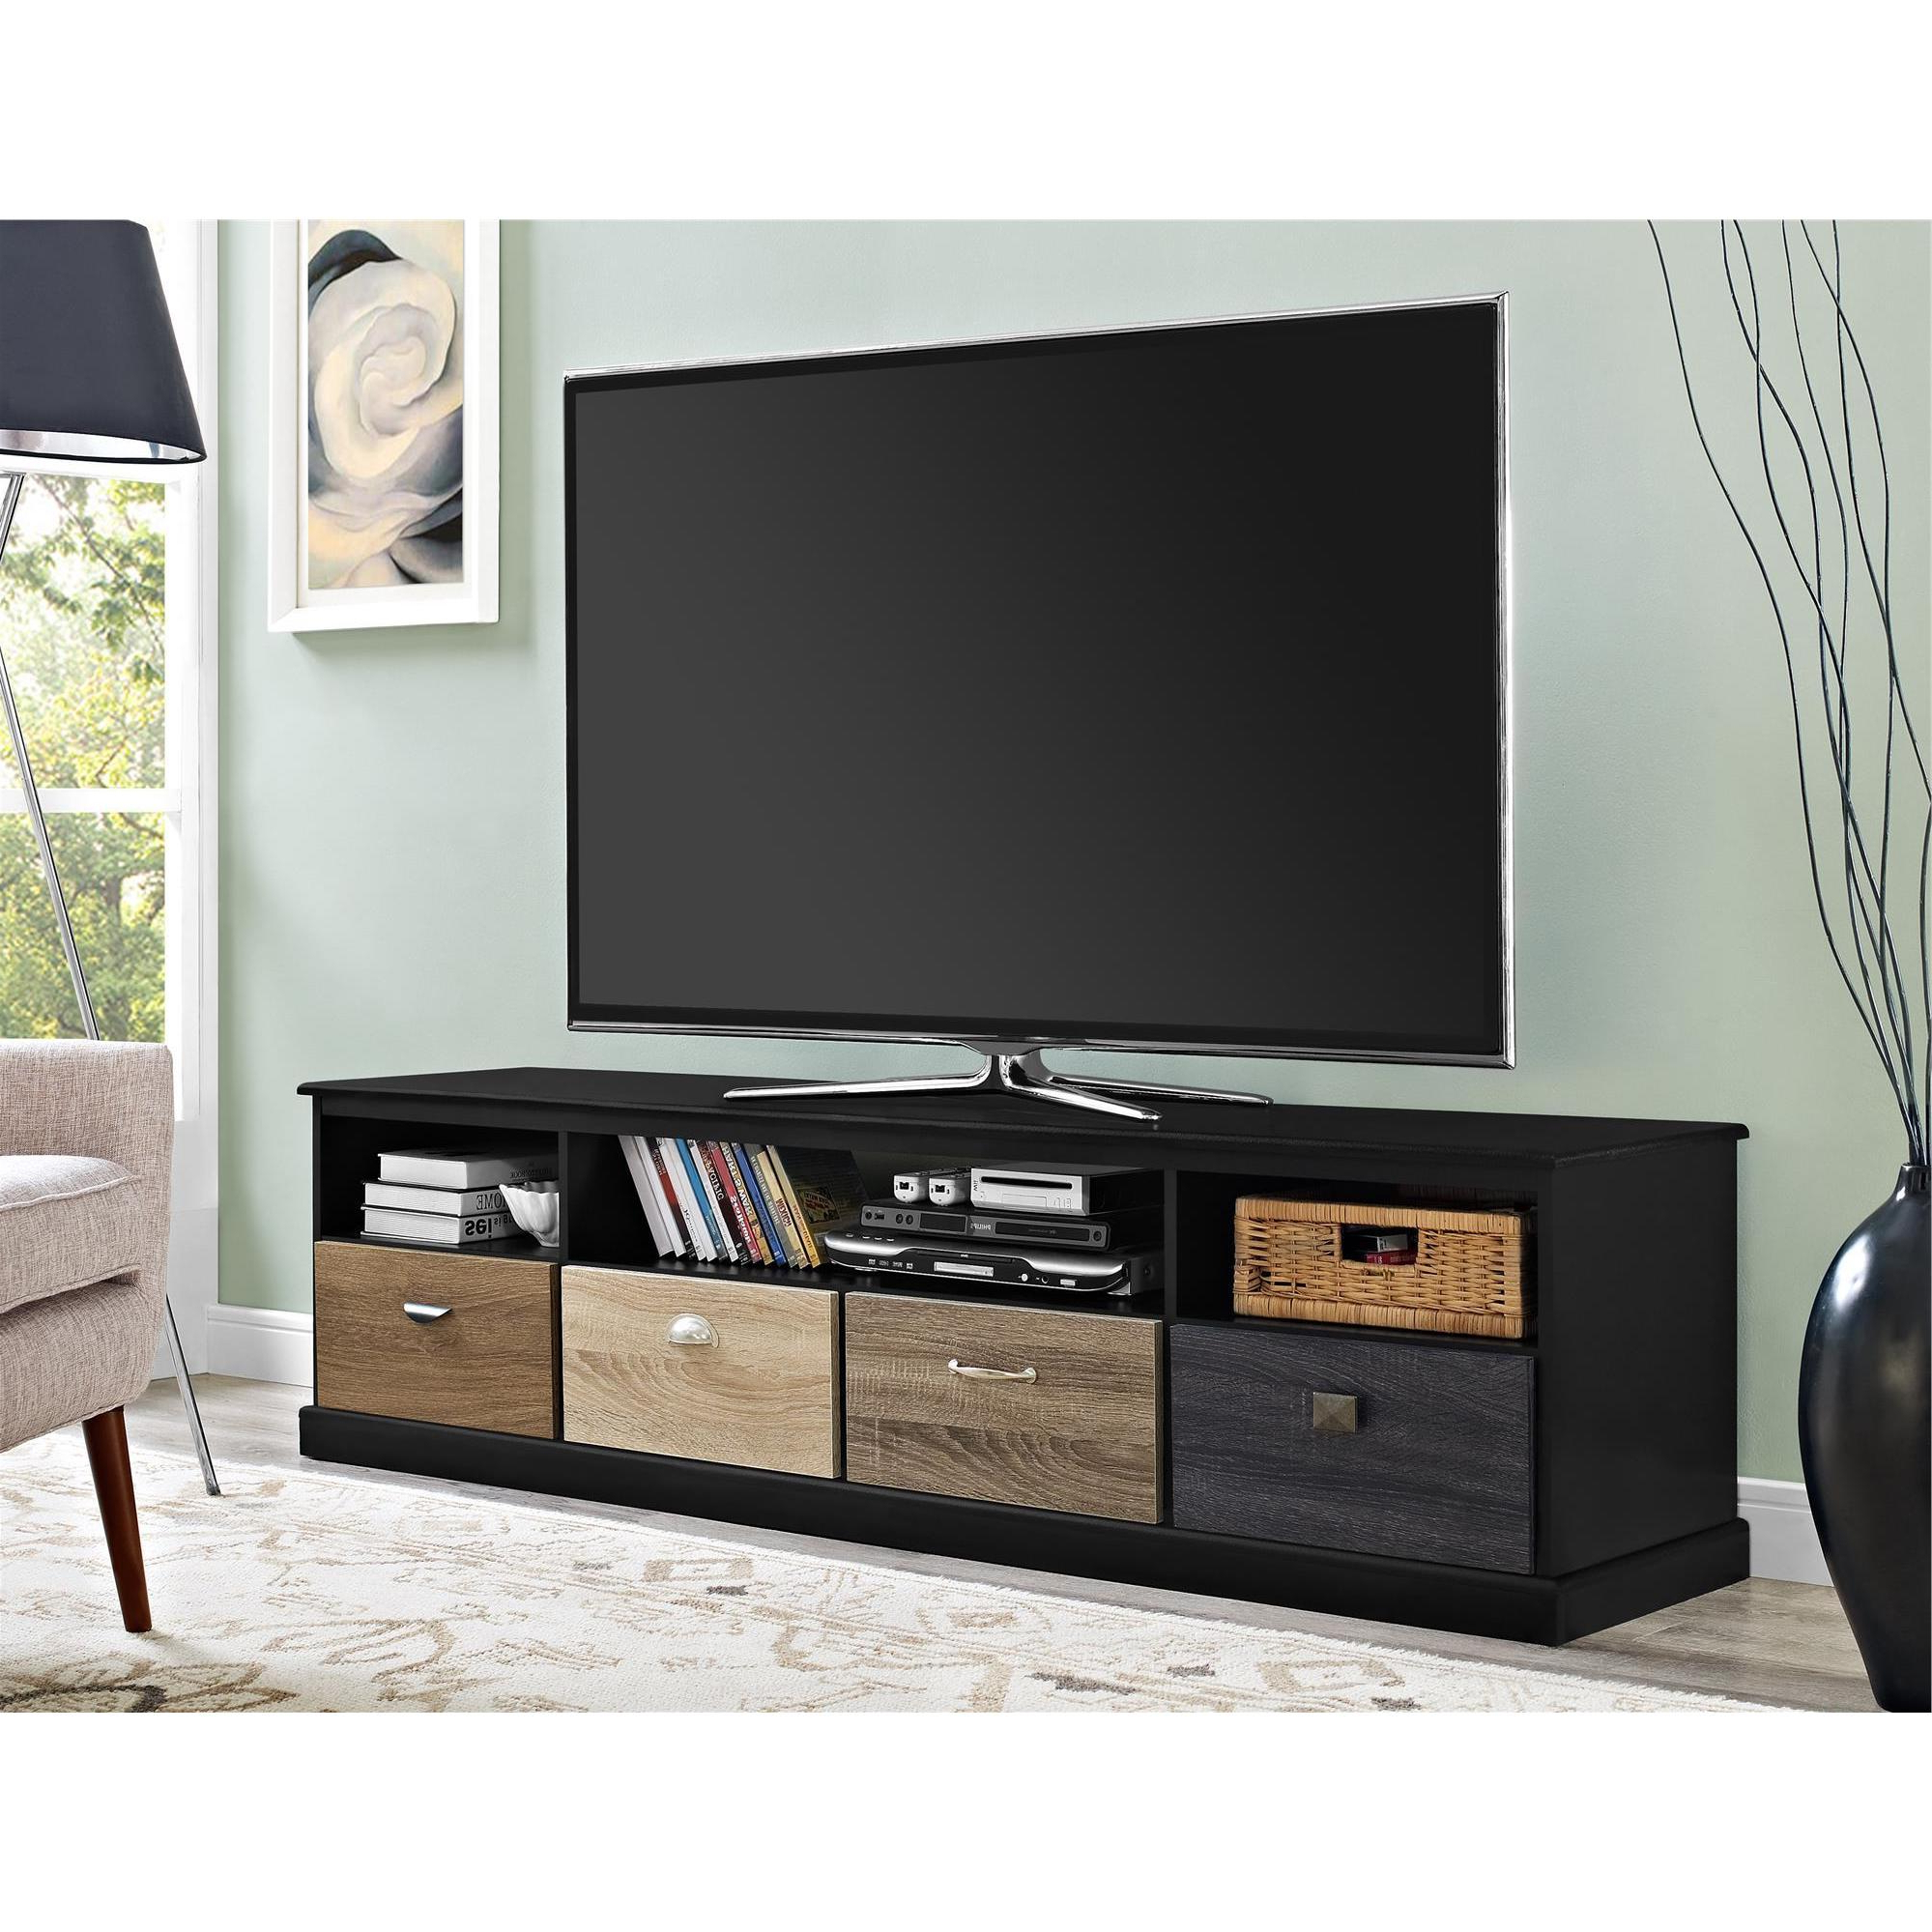 Avenue Greene Mercer 65 Inch Black Tv Console With Multicolored Drawer  Fronts Inside Kilian Grey 74 Inch Tv Stands (View 6 of 20)